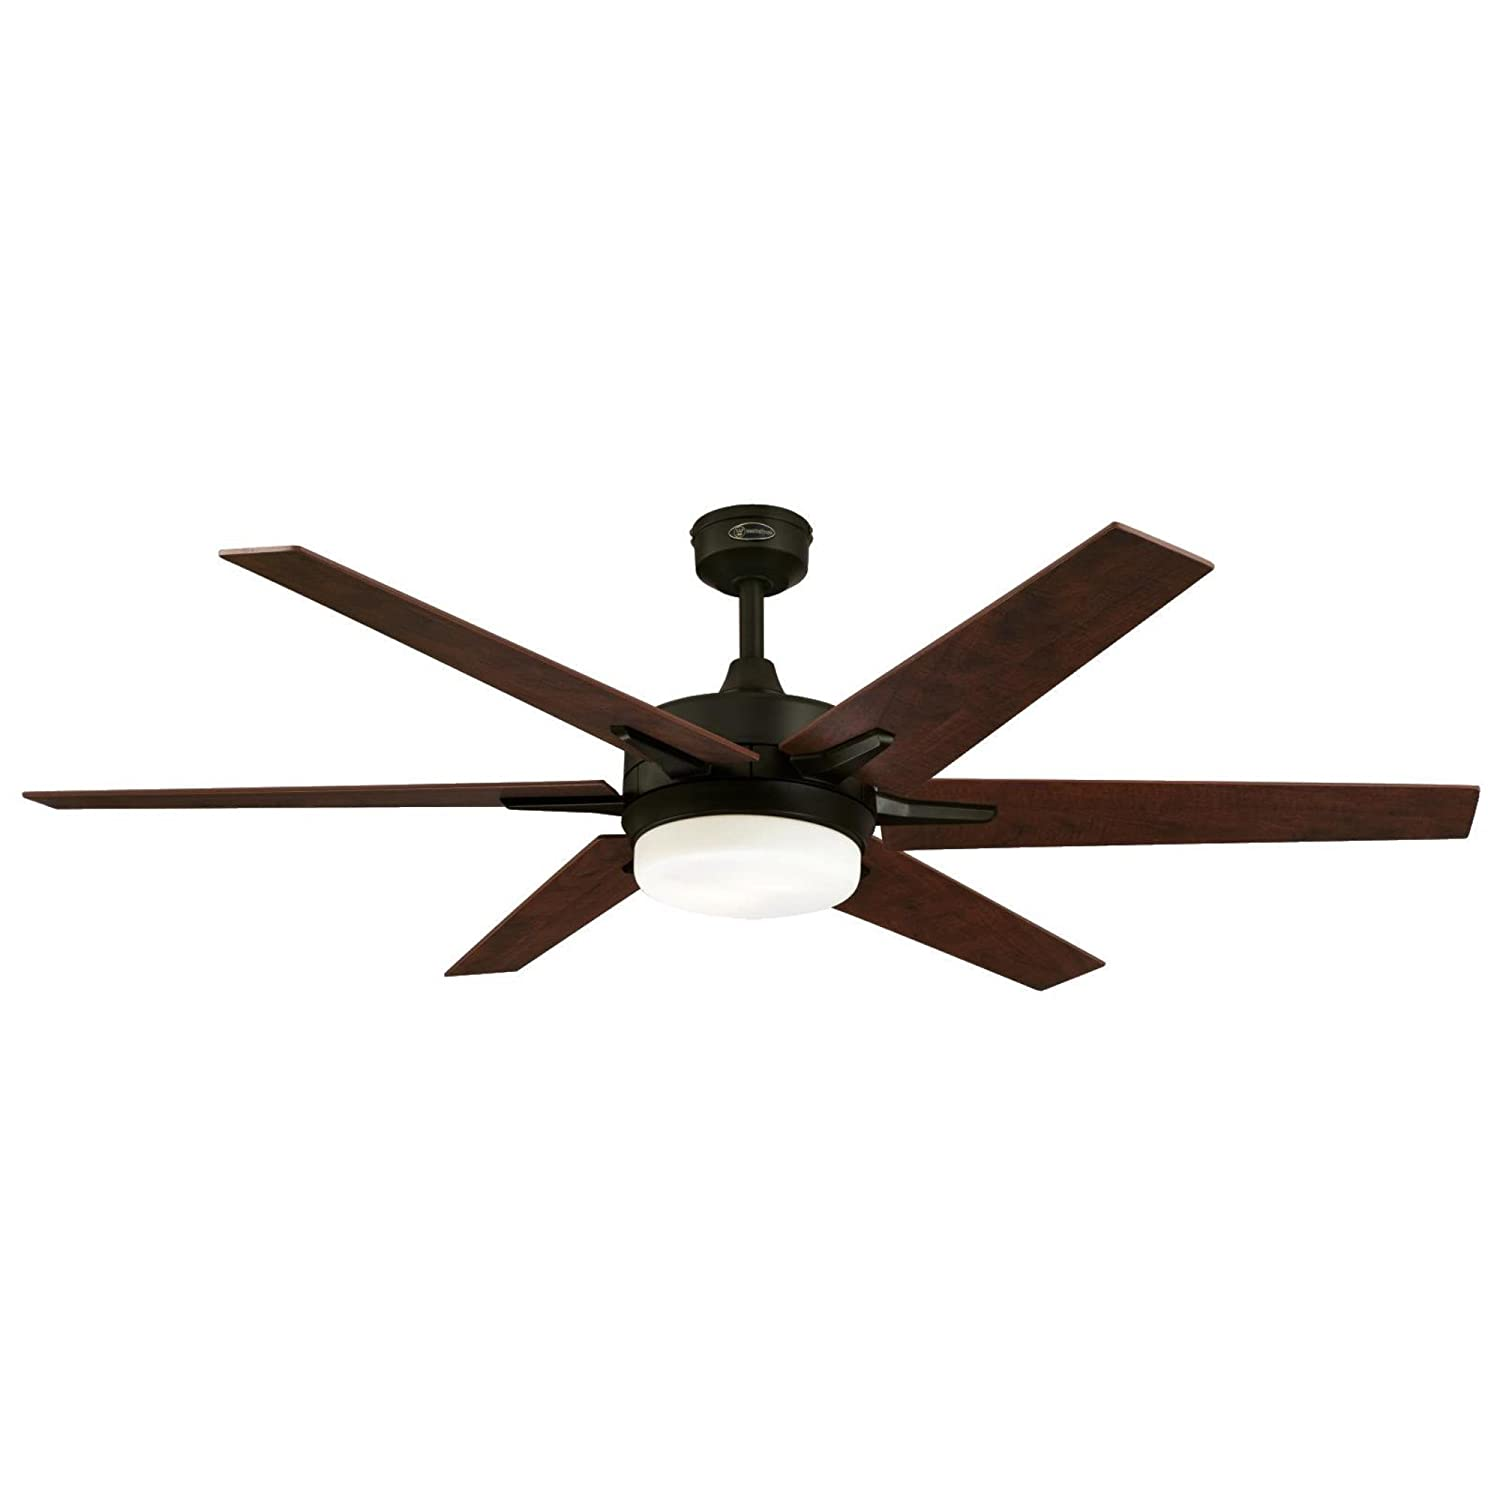 Westinghouse 7207800 Cayuga 60-Inch Oil Rubbed Bronze Indoor Ceiling Fan, Dimmable LED Light Kit with Opal Frosted Glass, Remote Control Included